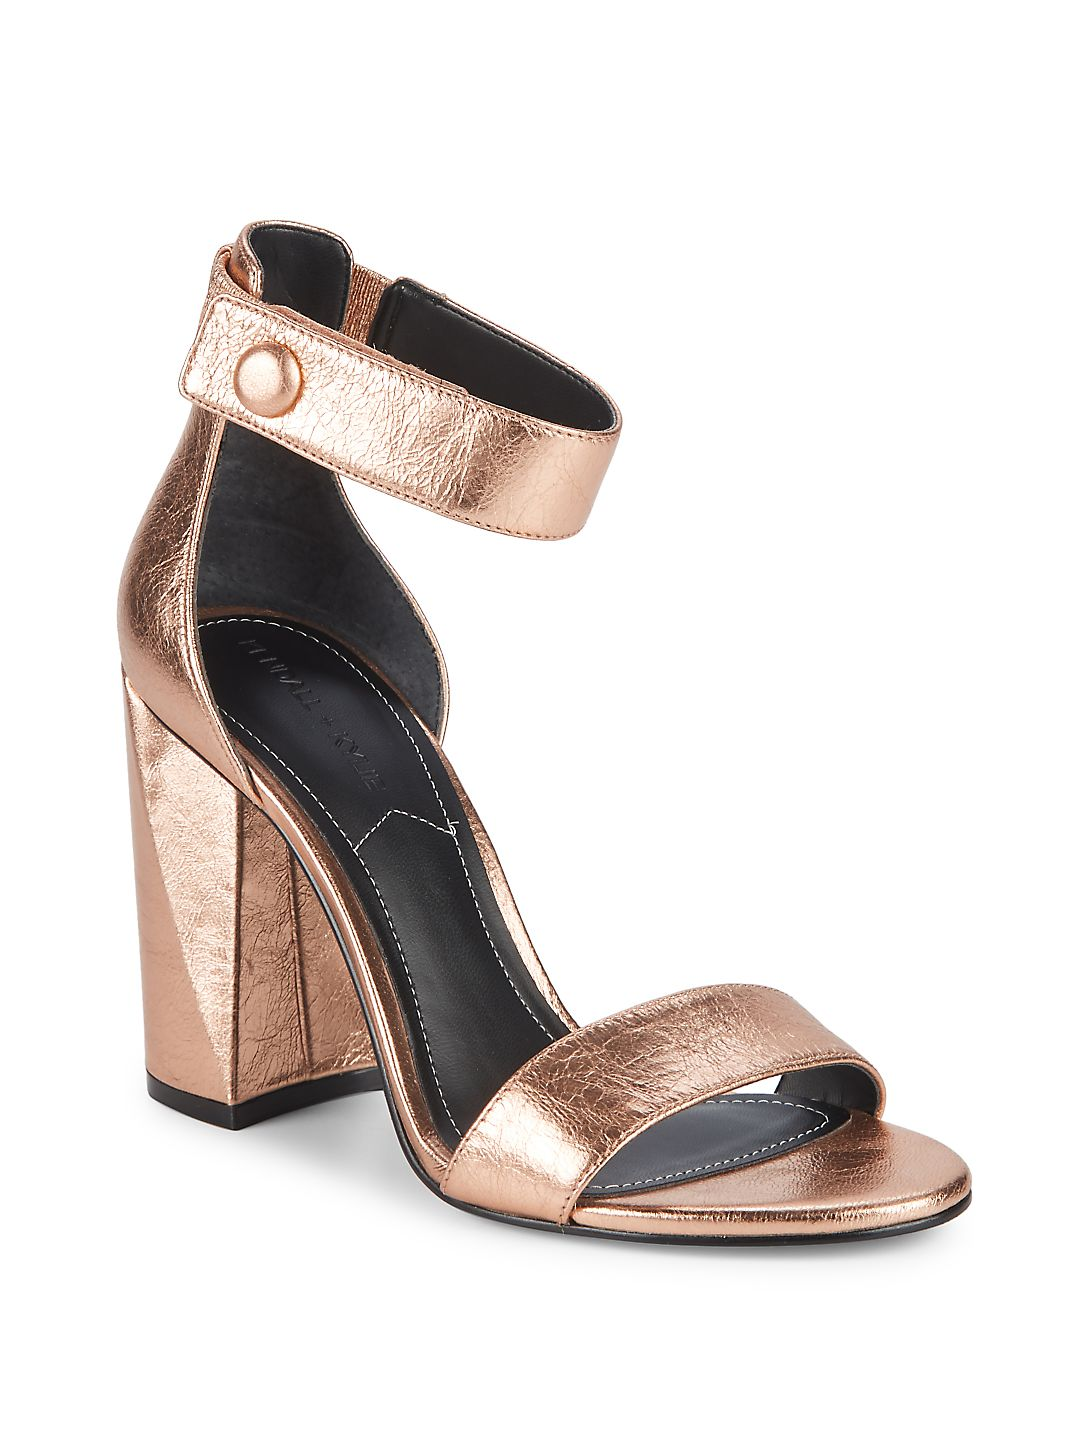 Jewel Heeled Sandals